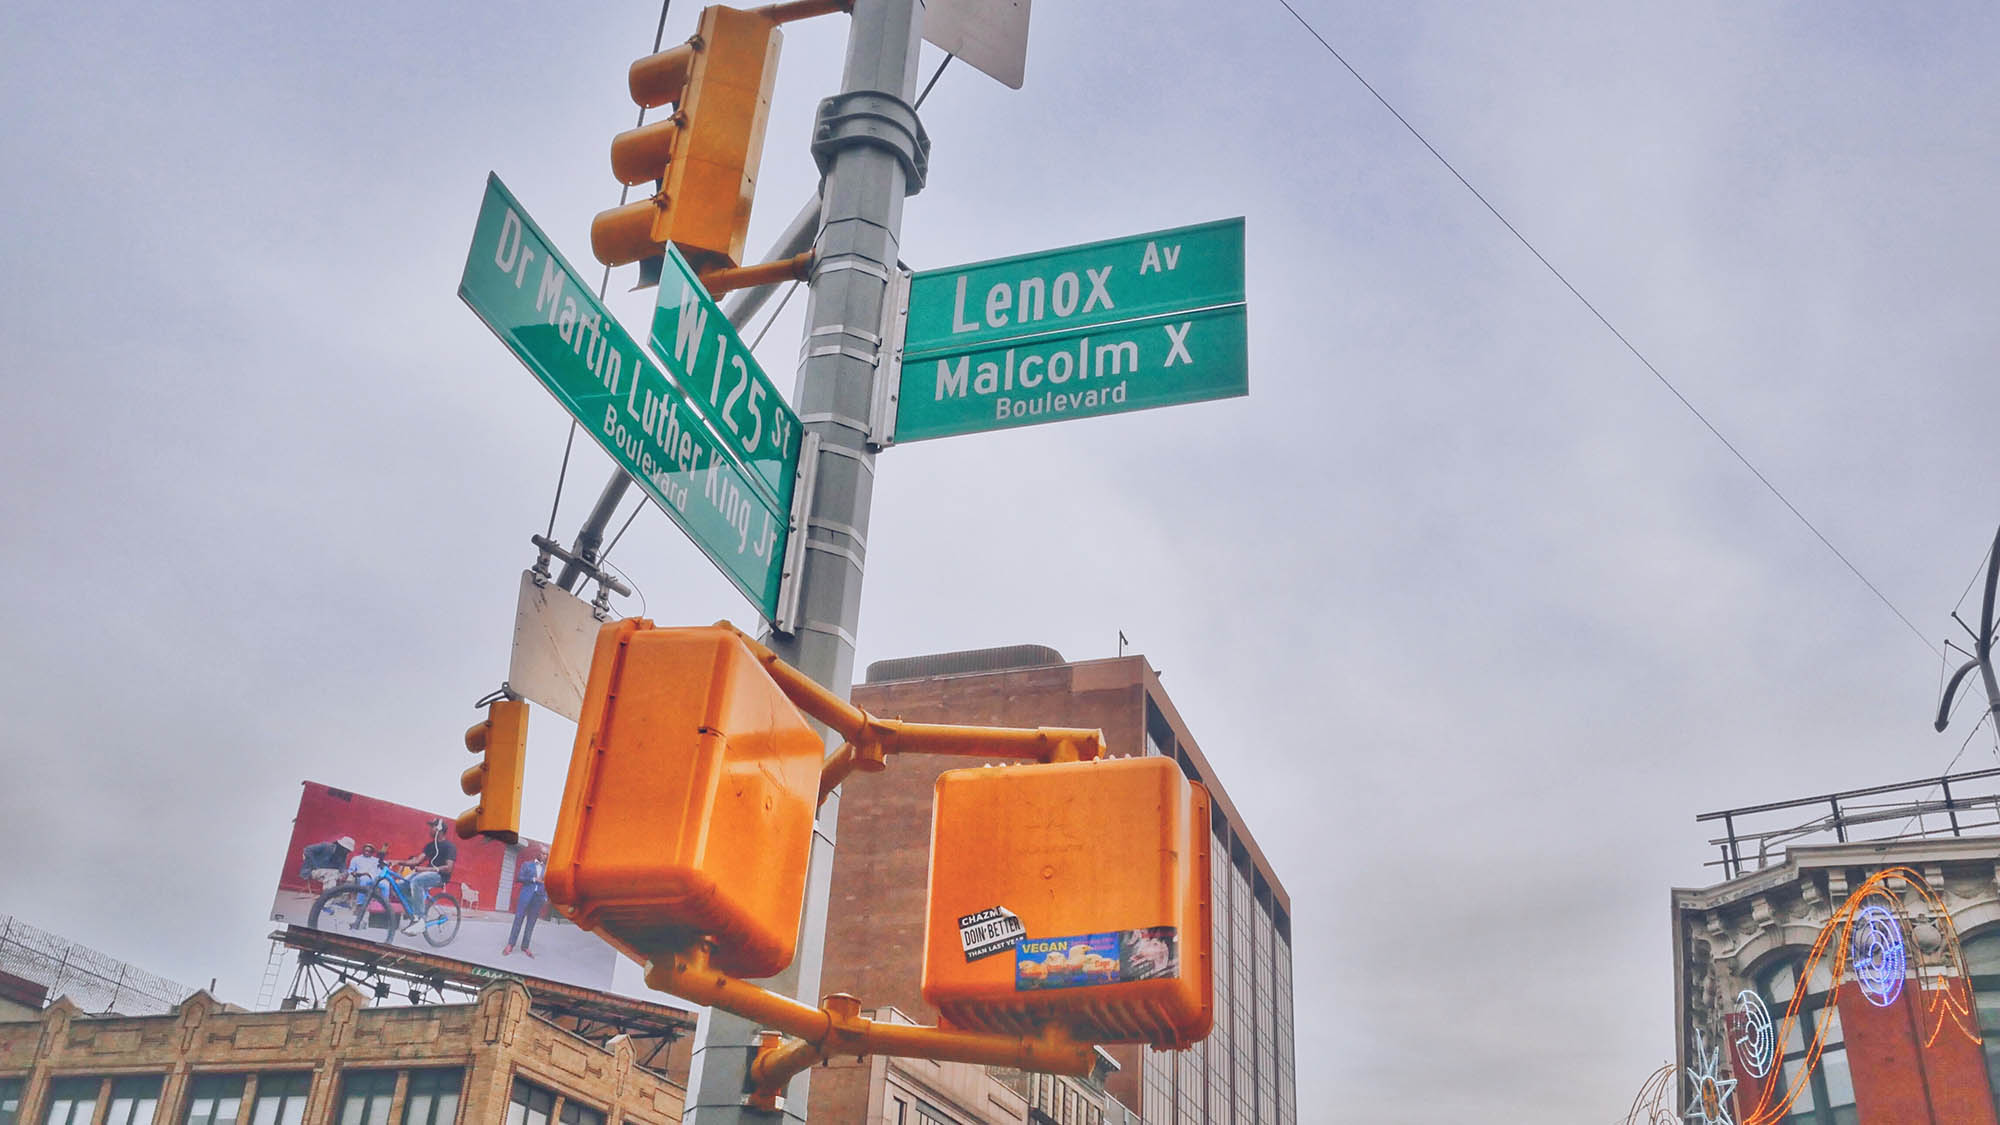 Lenox Ave 125 St Signs Intersection Harlem NYC